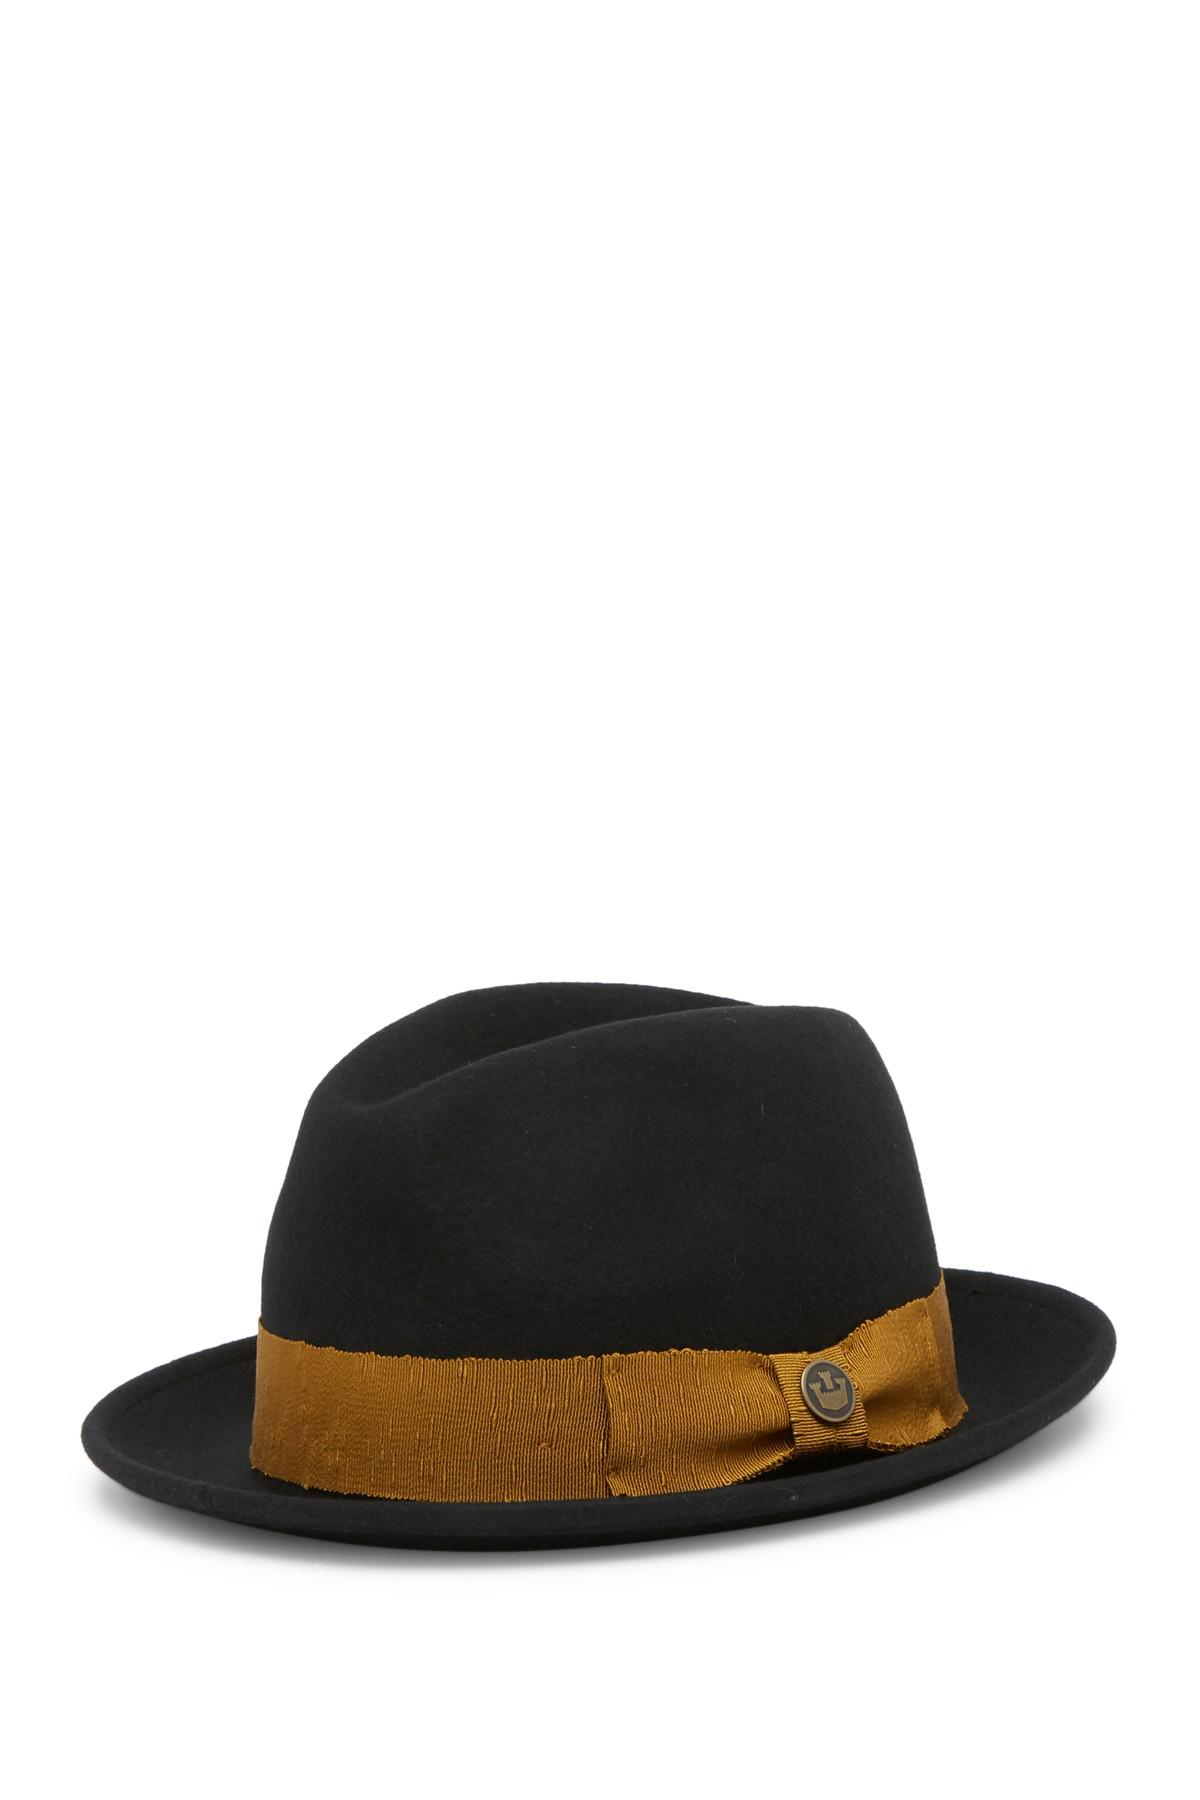 7aa242896 Goorin Bros Mr. Driver Wool Fedora in Black for Men - Lyst